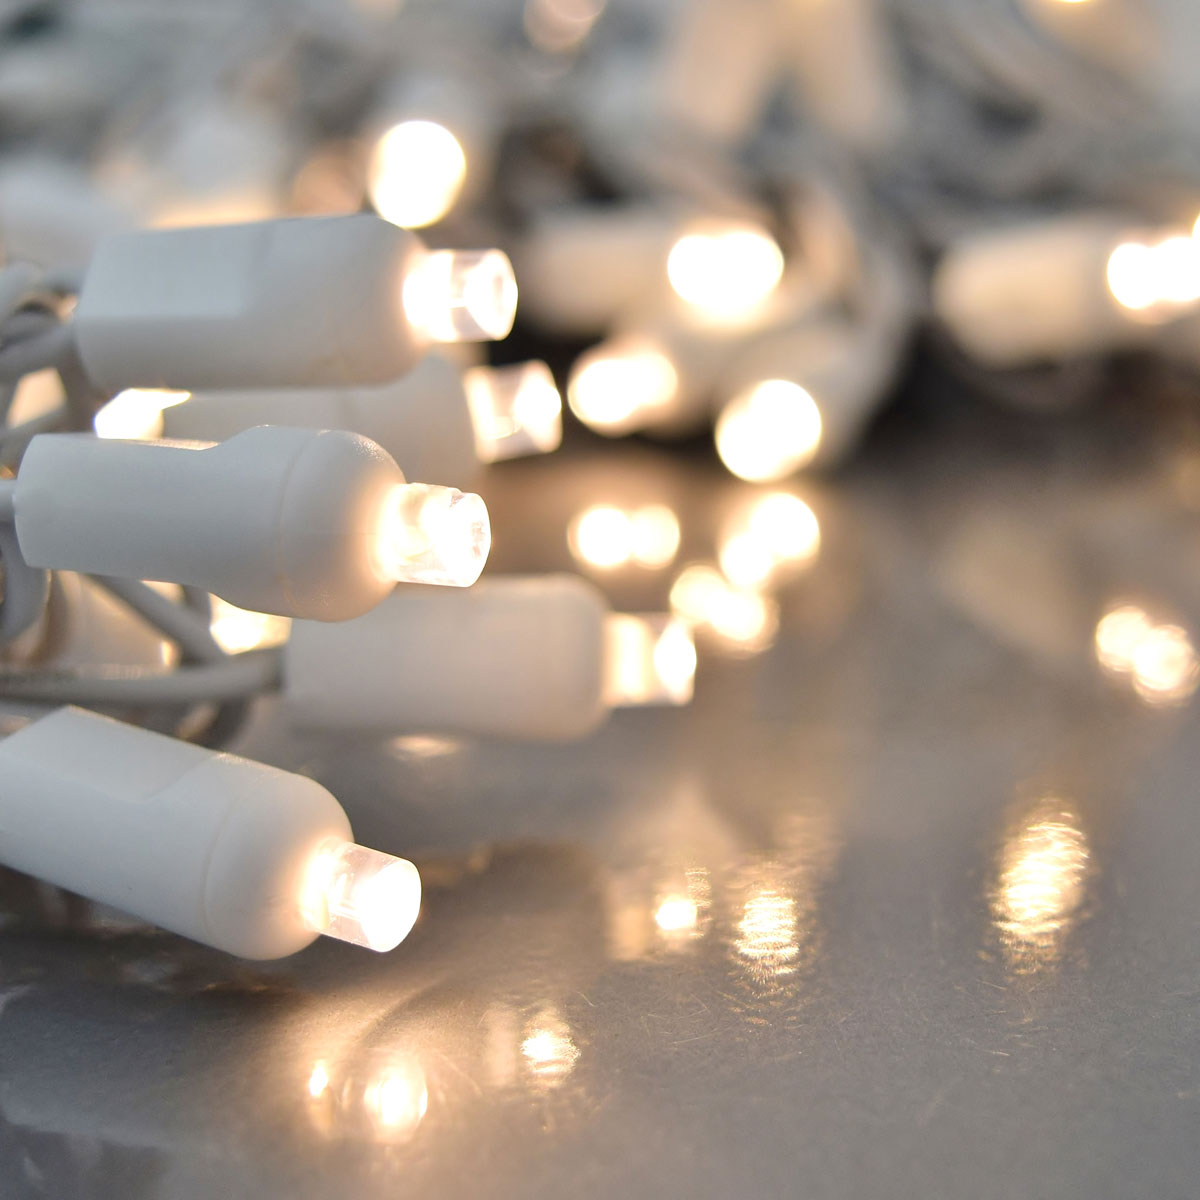 Warm White LED String Light Set - 100 Lights - White Wire